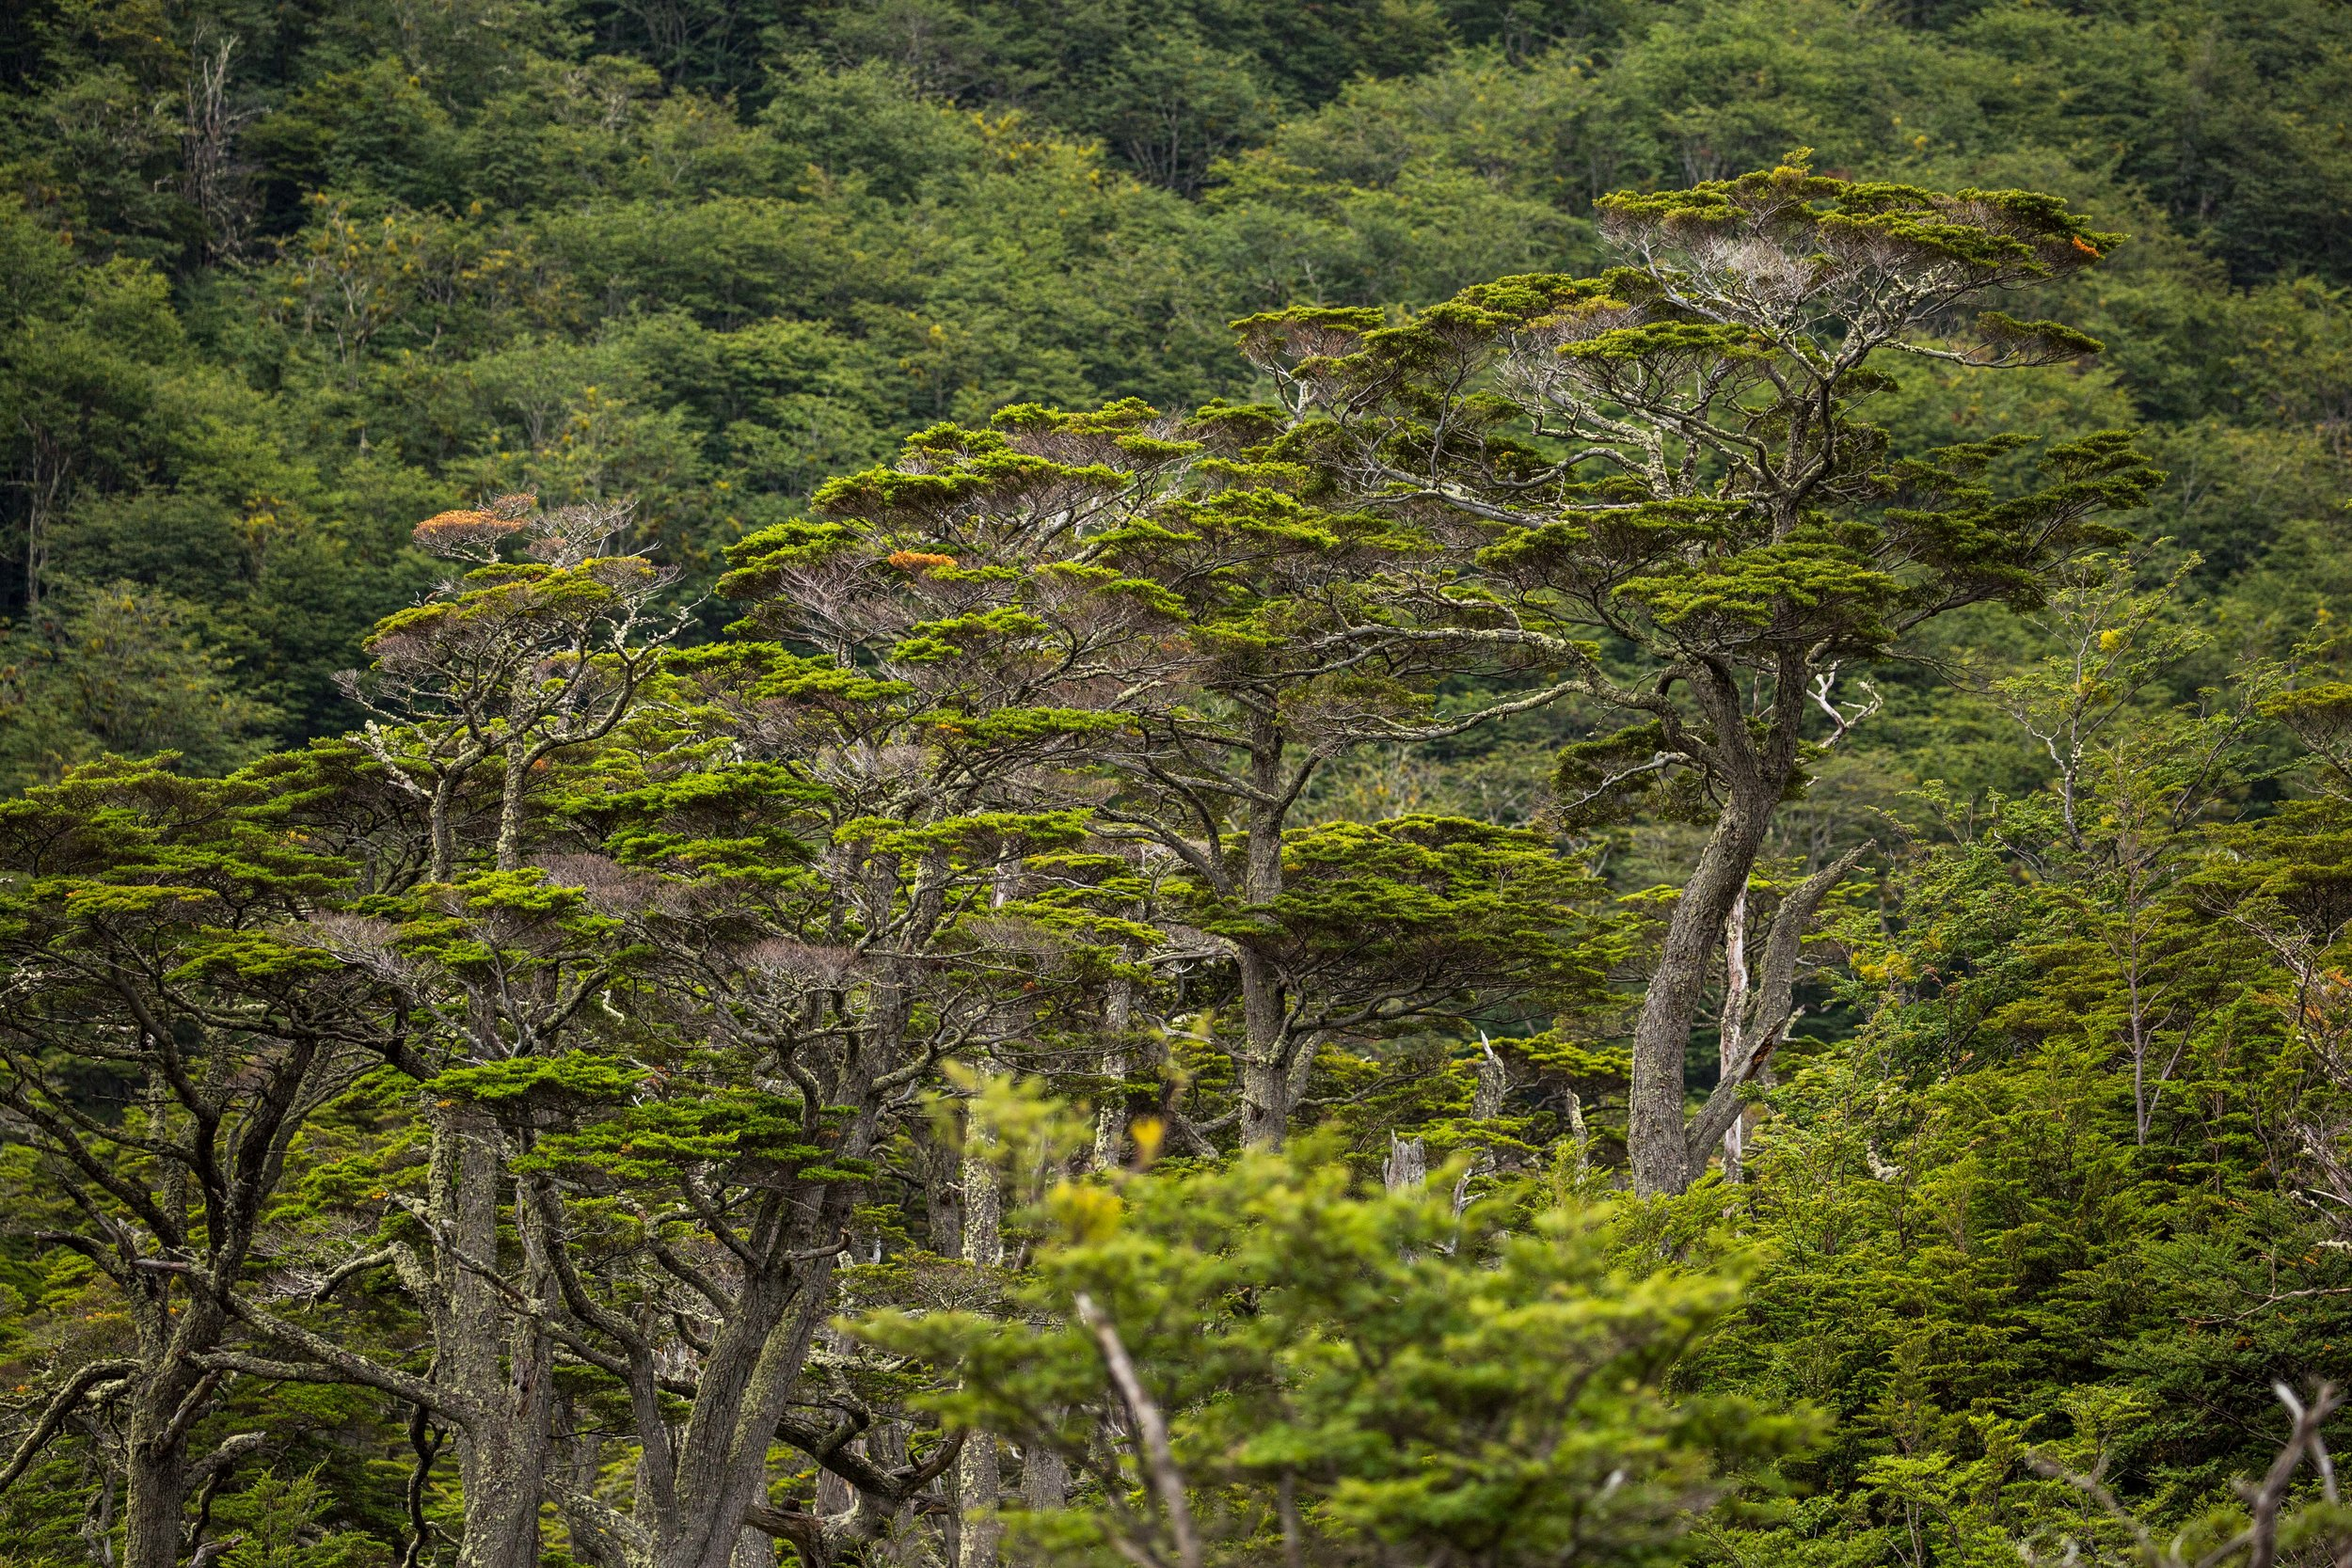 """Evergreen """"coigüe"""" trees standing tall on mountain slopes."""